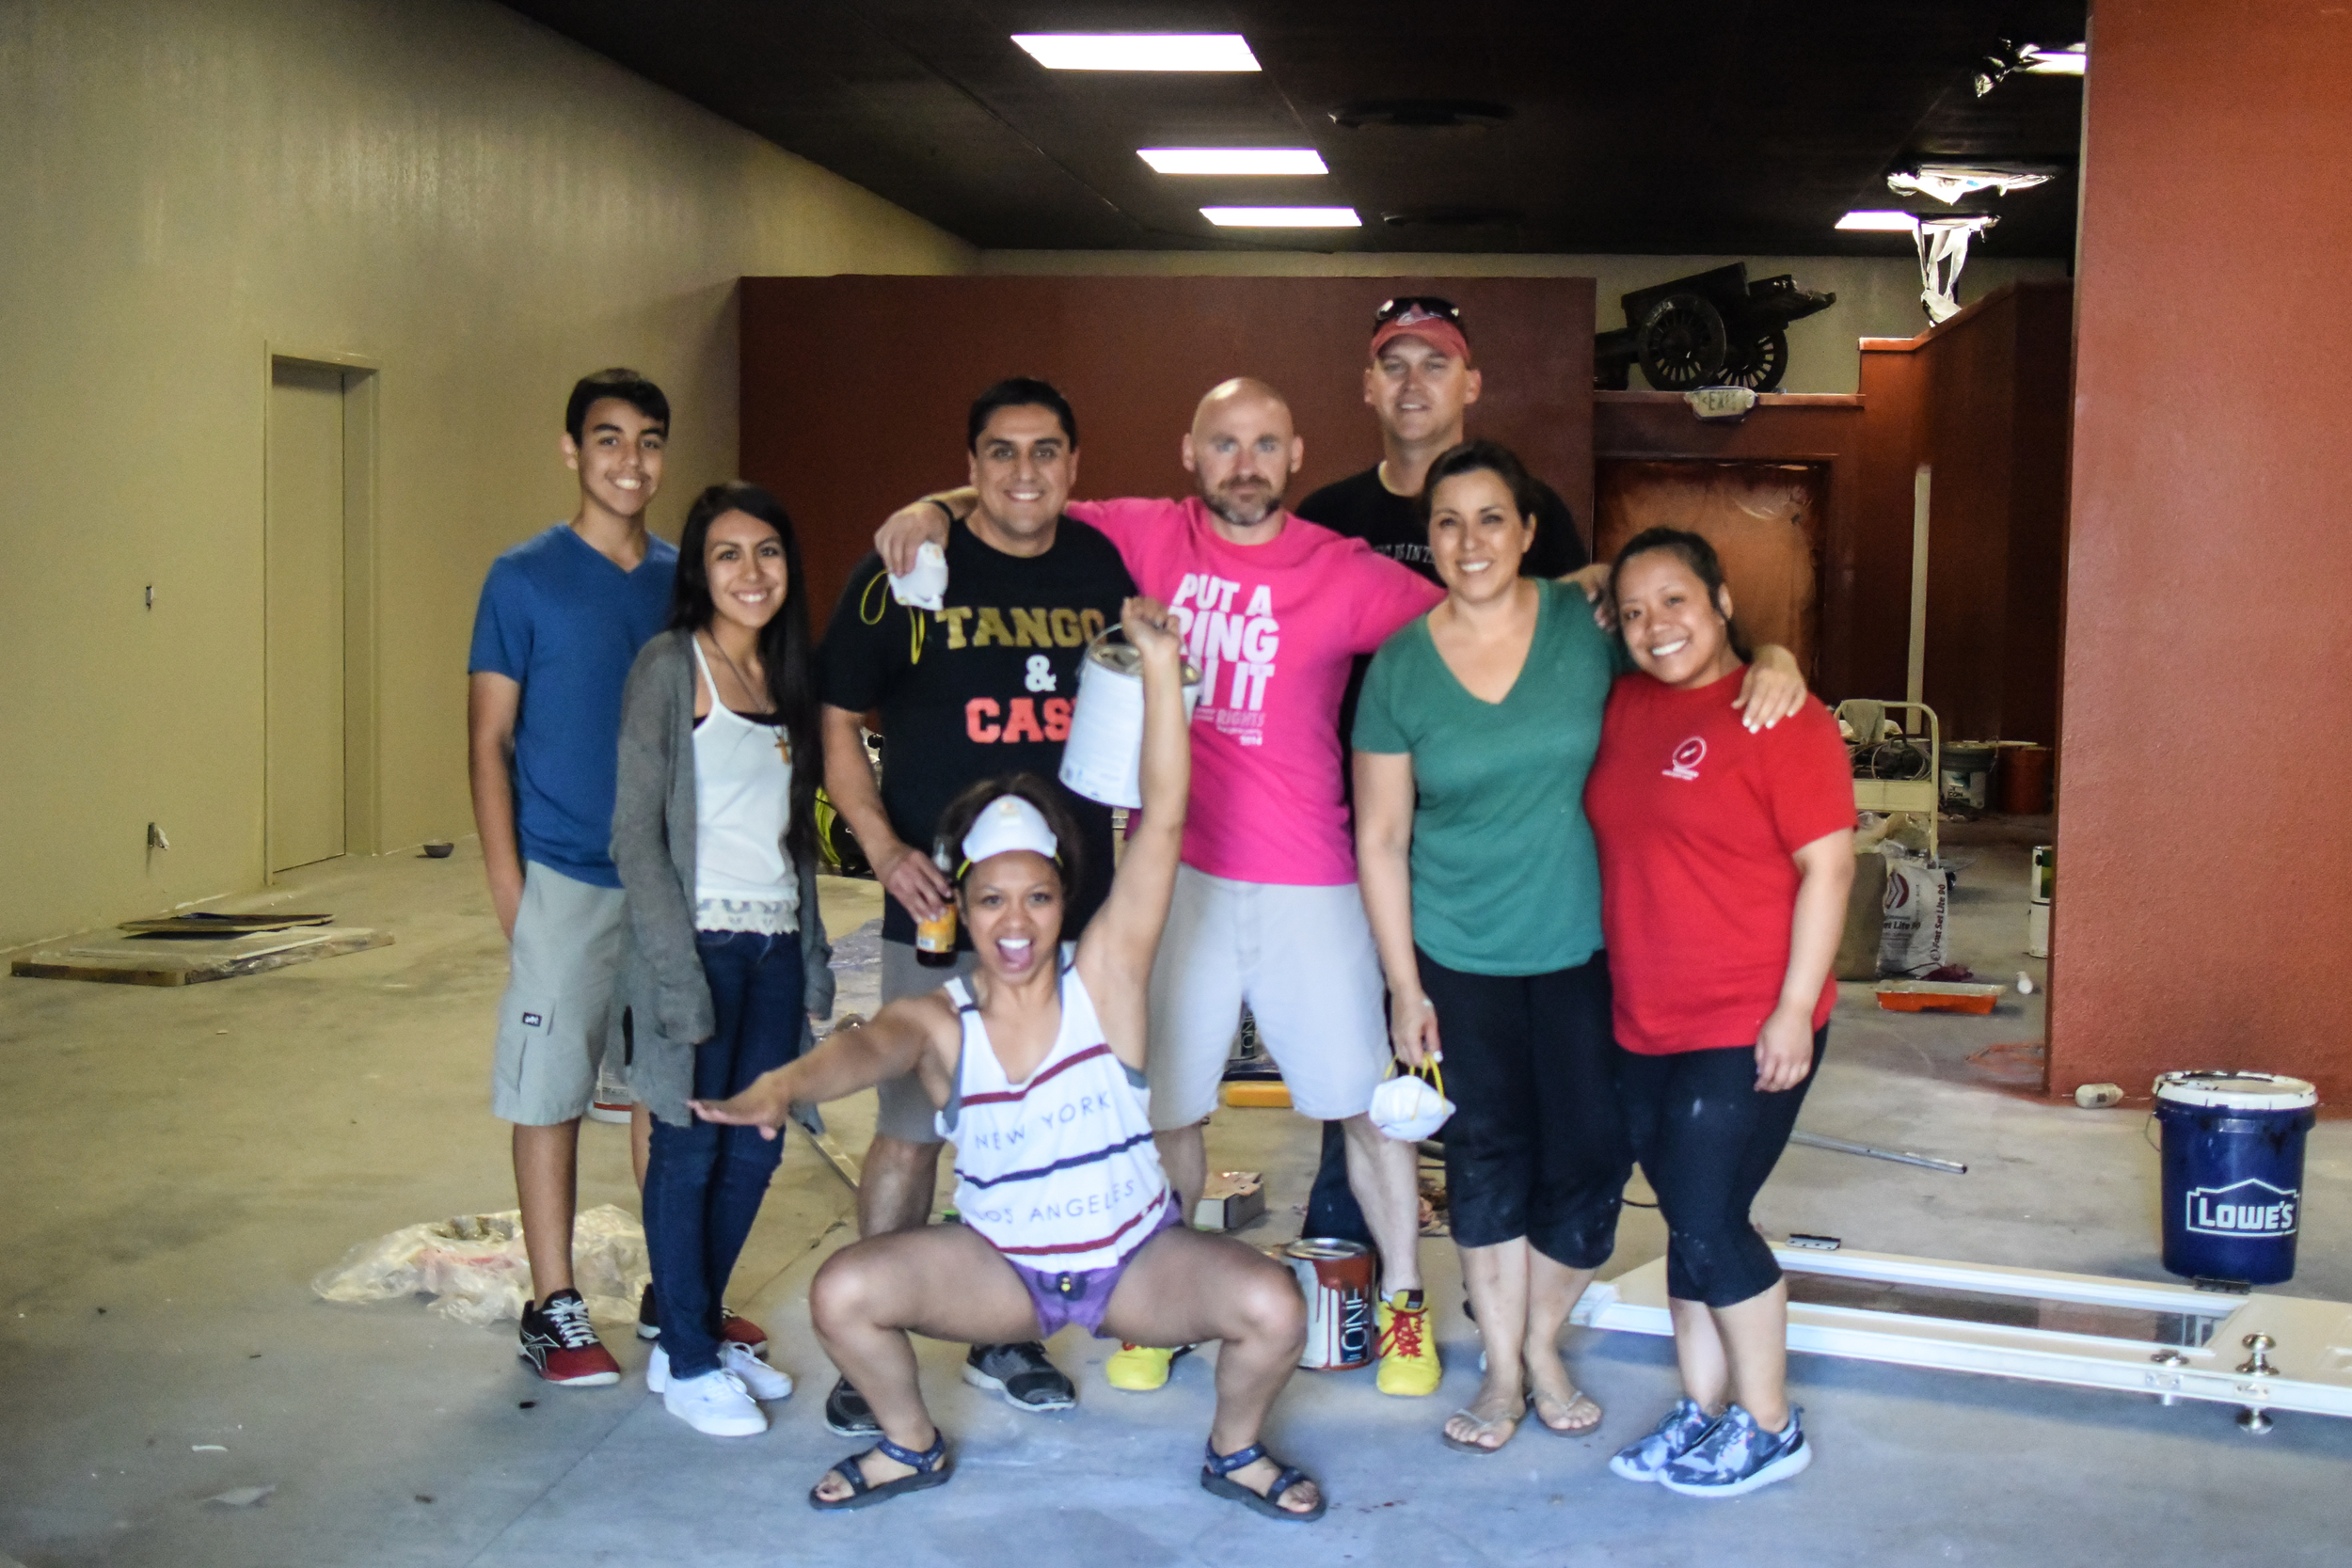 Thank you CFSV family for your time to help out during our expansion! Our new paint job is looking CrossFit chic and stylin'! We are enjoying the process as we see life improvements everywhere. I expect to see consistent and constant development from training to space improvements as we only rest when we are dead!